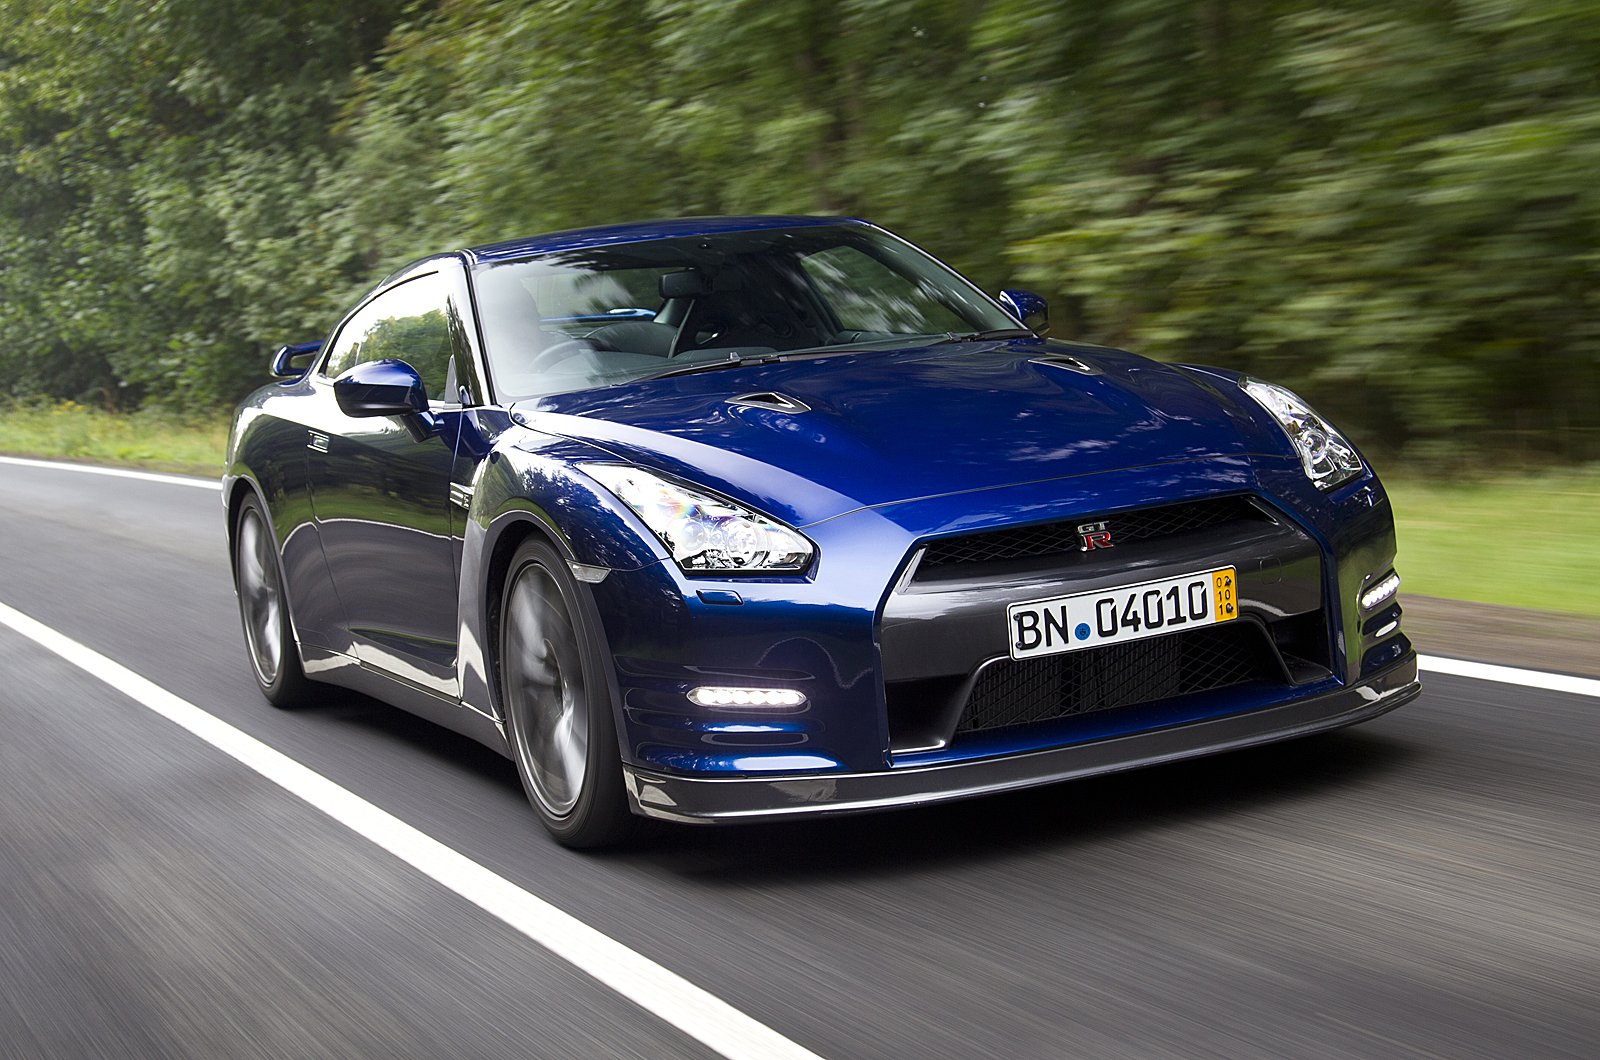 Nissan gtr posts impressive time around the top gear track